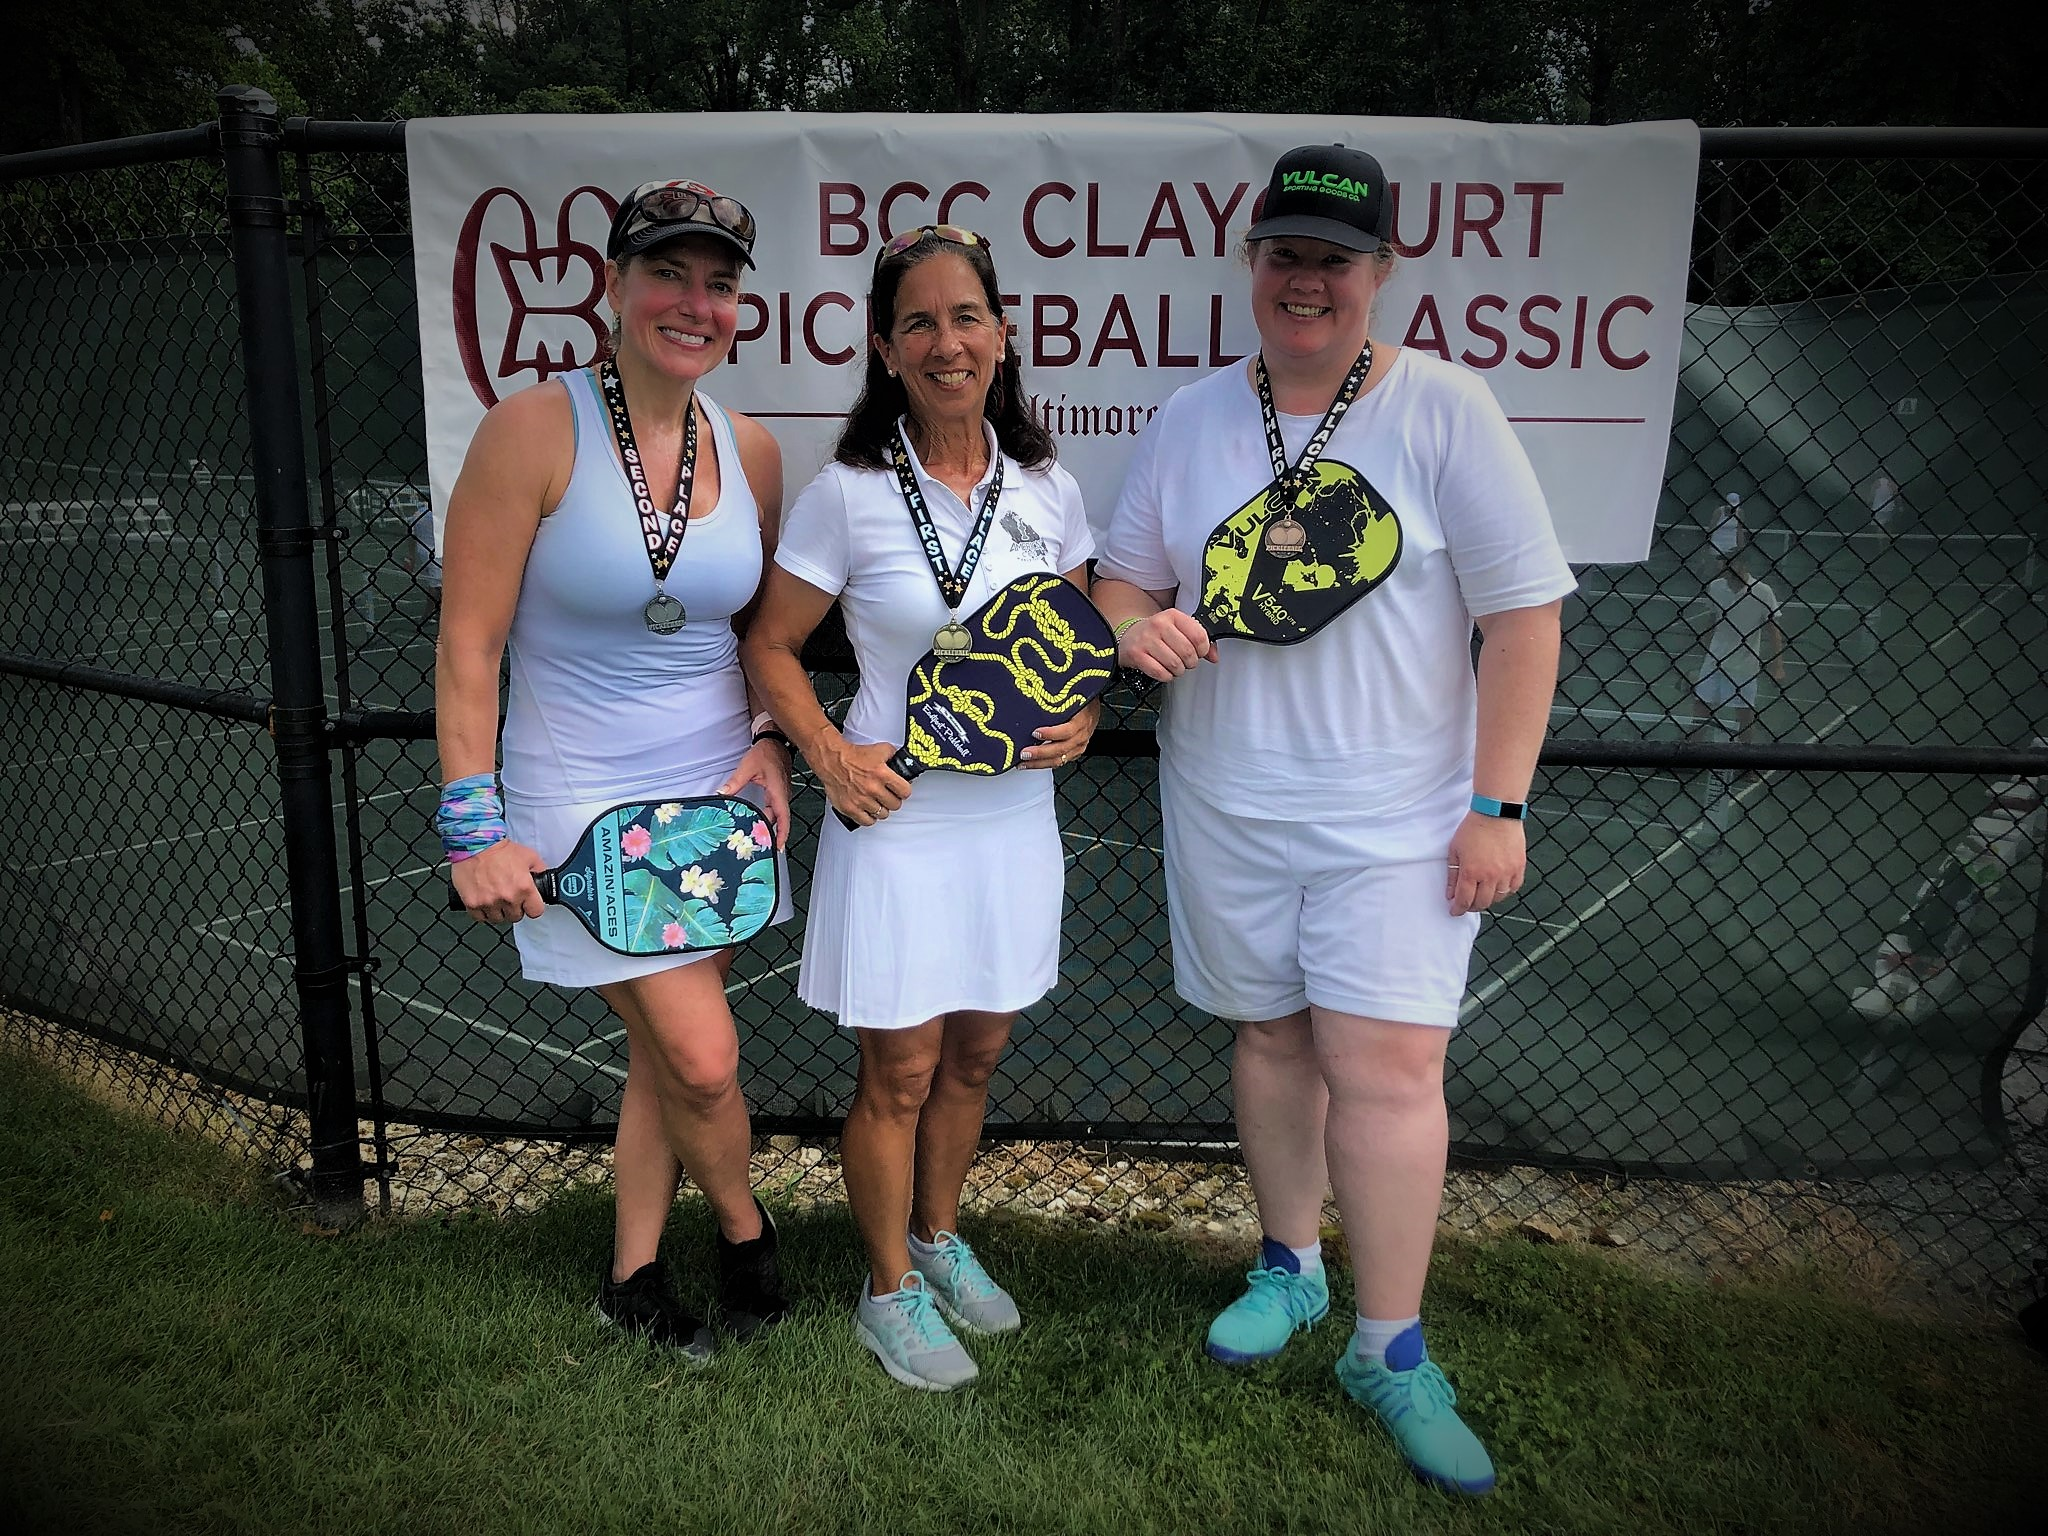 SARA WINS GOLD WITH EASTPORT PICKLEBALL'S NEWEST PADDLE - The Midshipman - AUGUST 3, 2019